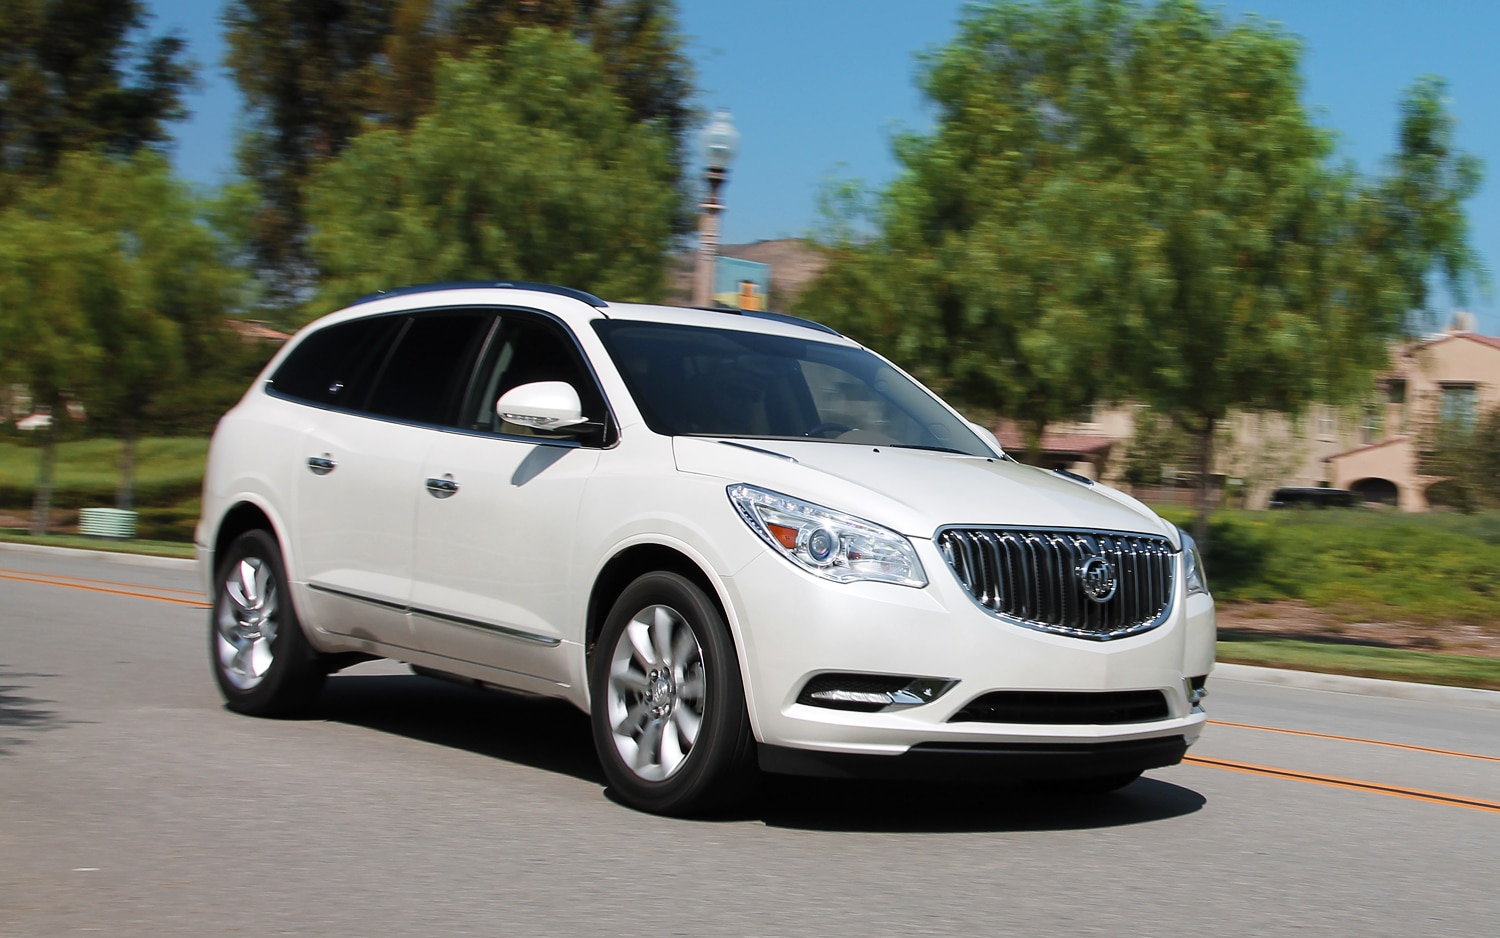 2013 Buick Enclave Front View 03